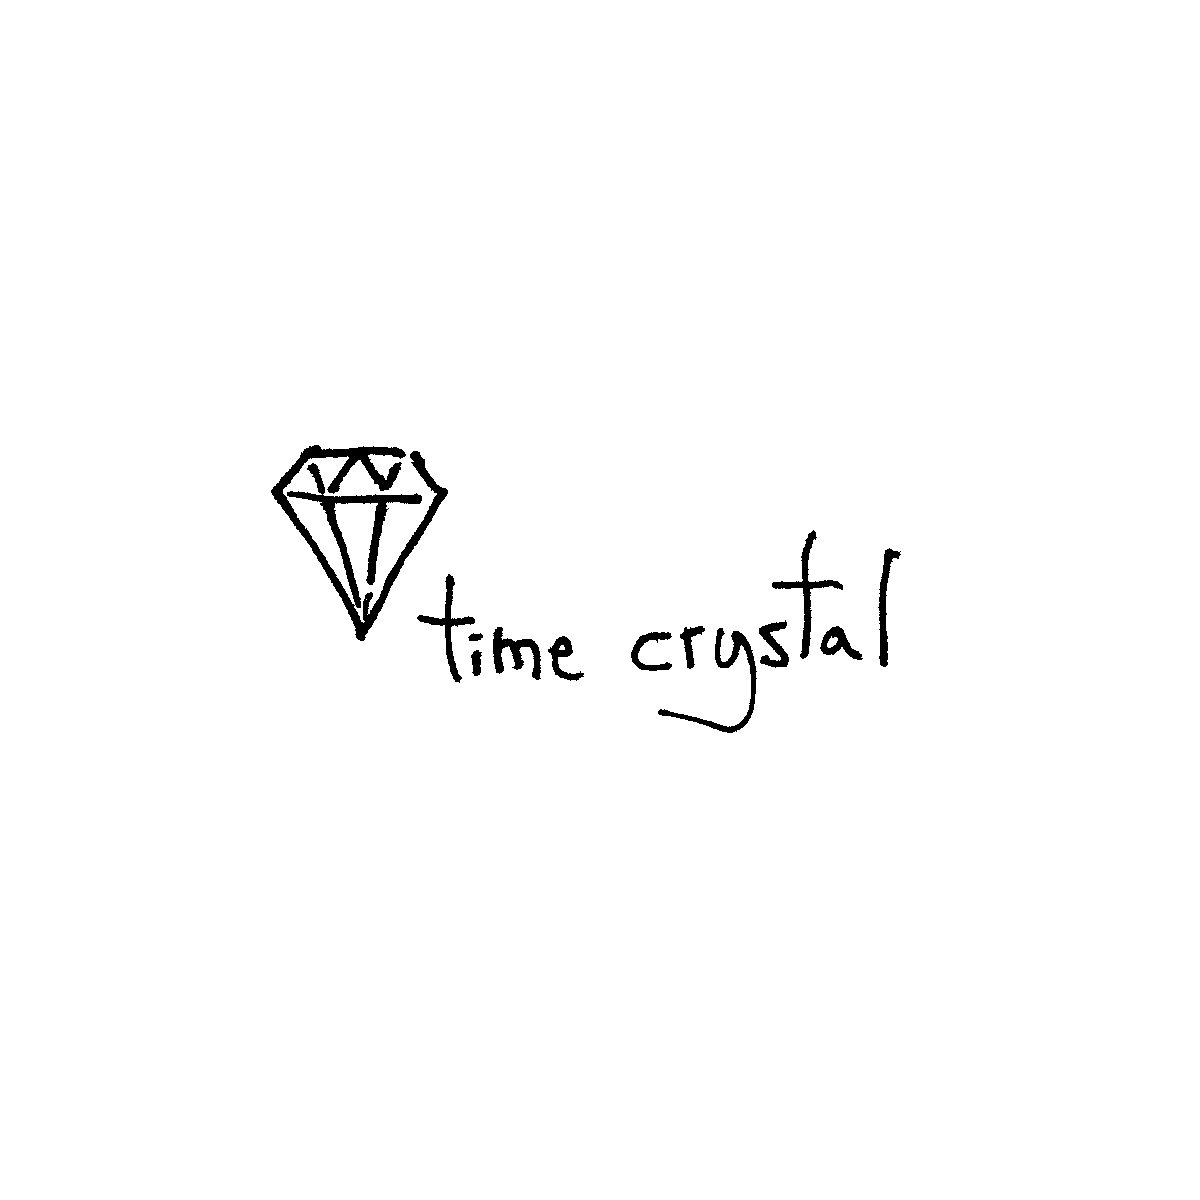 time crystal cartoon doodle